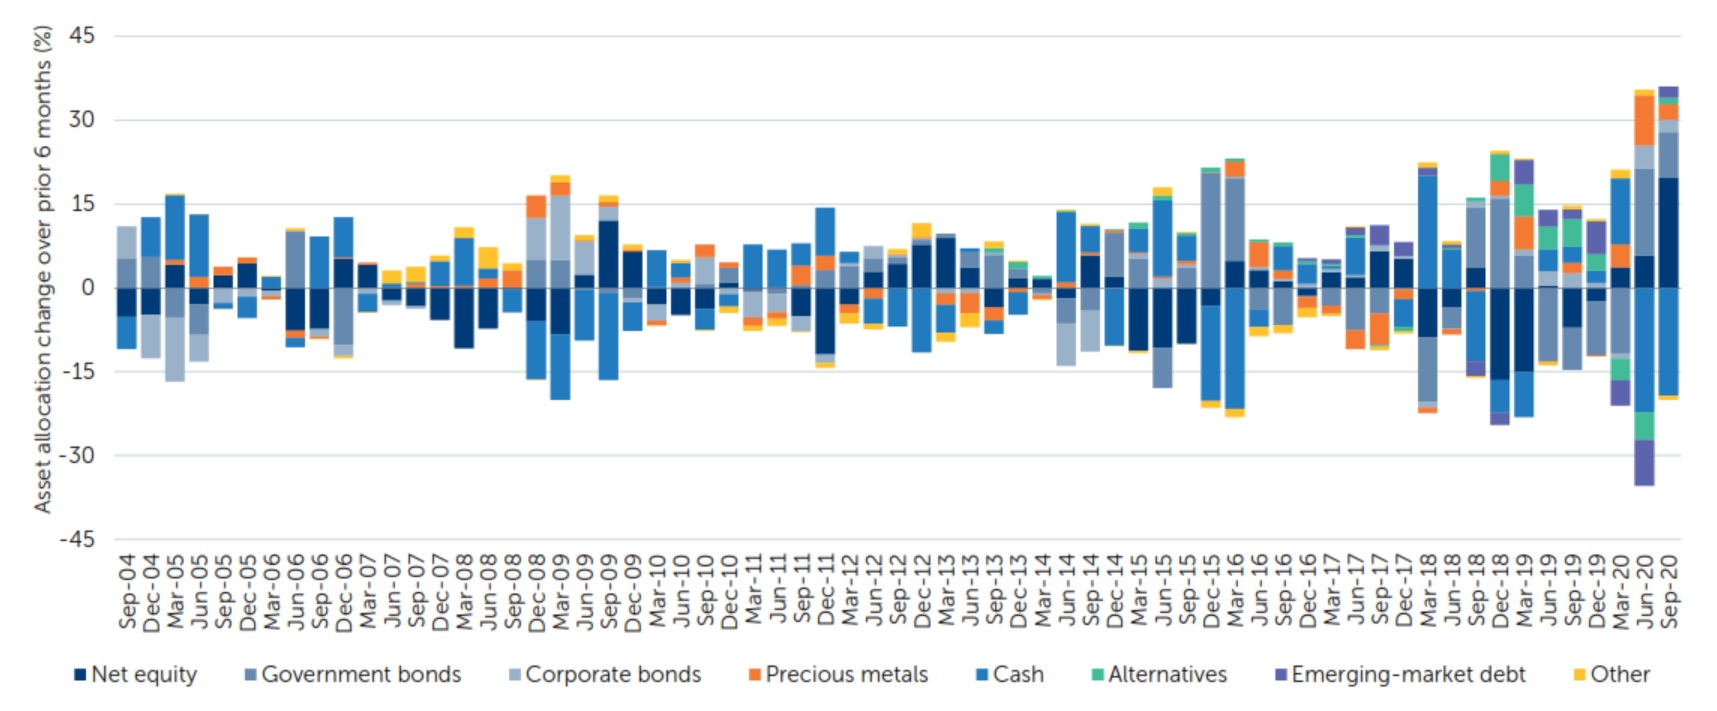 Newton Real Return: Changes in asset allocation over six-month periods